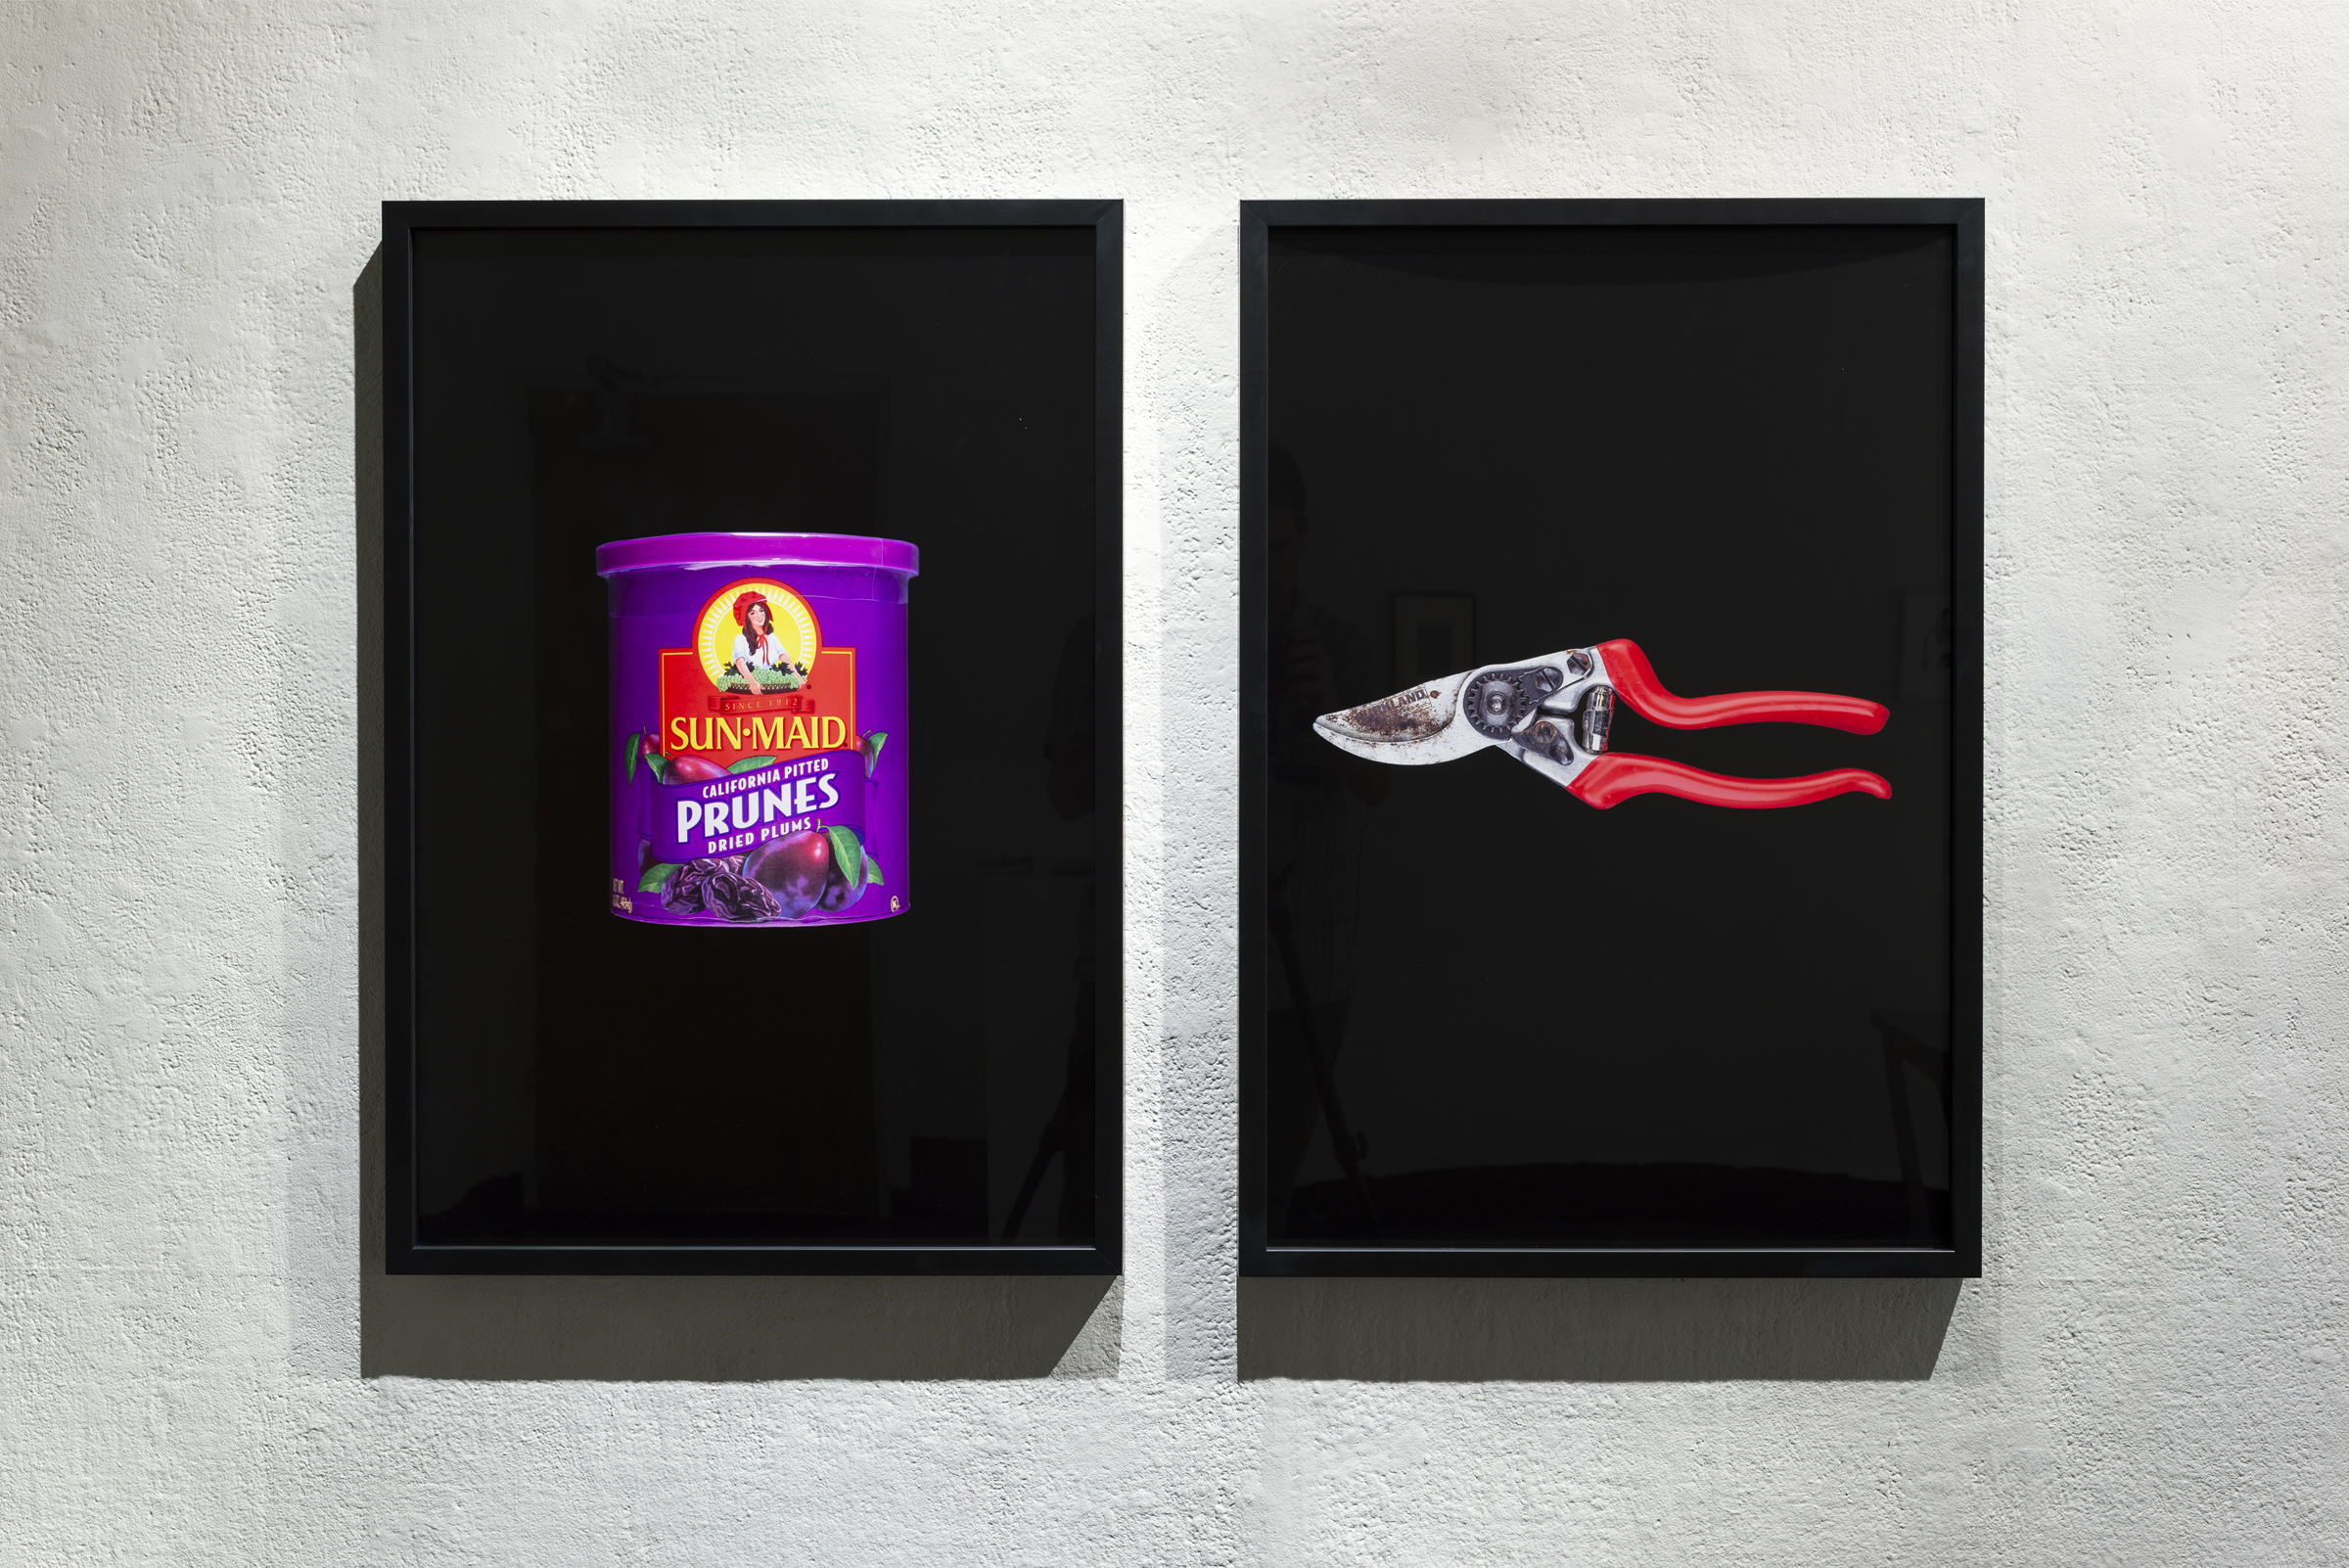 "Sun-Maid California Pitted Prunes Dried Plums / Pruning Shears, Kirkland (2019) 20""x30"" / 20""x30"""